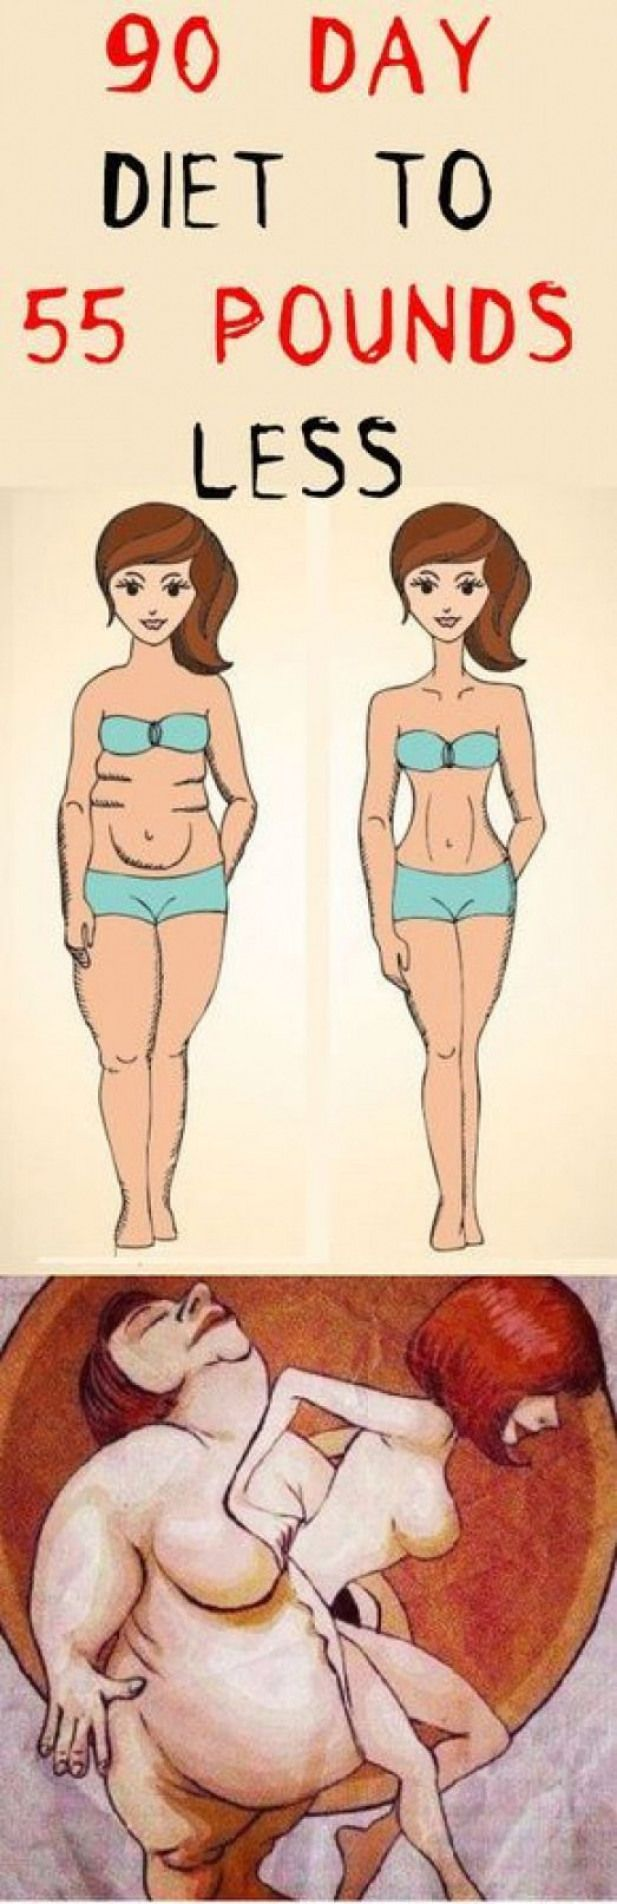 90 DAY DIET TO 55 POUNDS LESS #fitness #beauty #hair #workout #health #diy #skin #dietplanstolosewei...